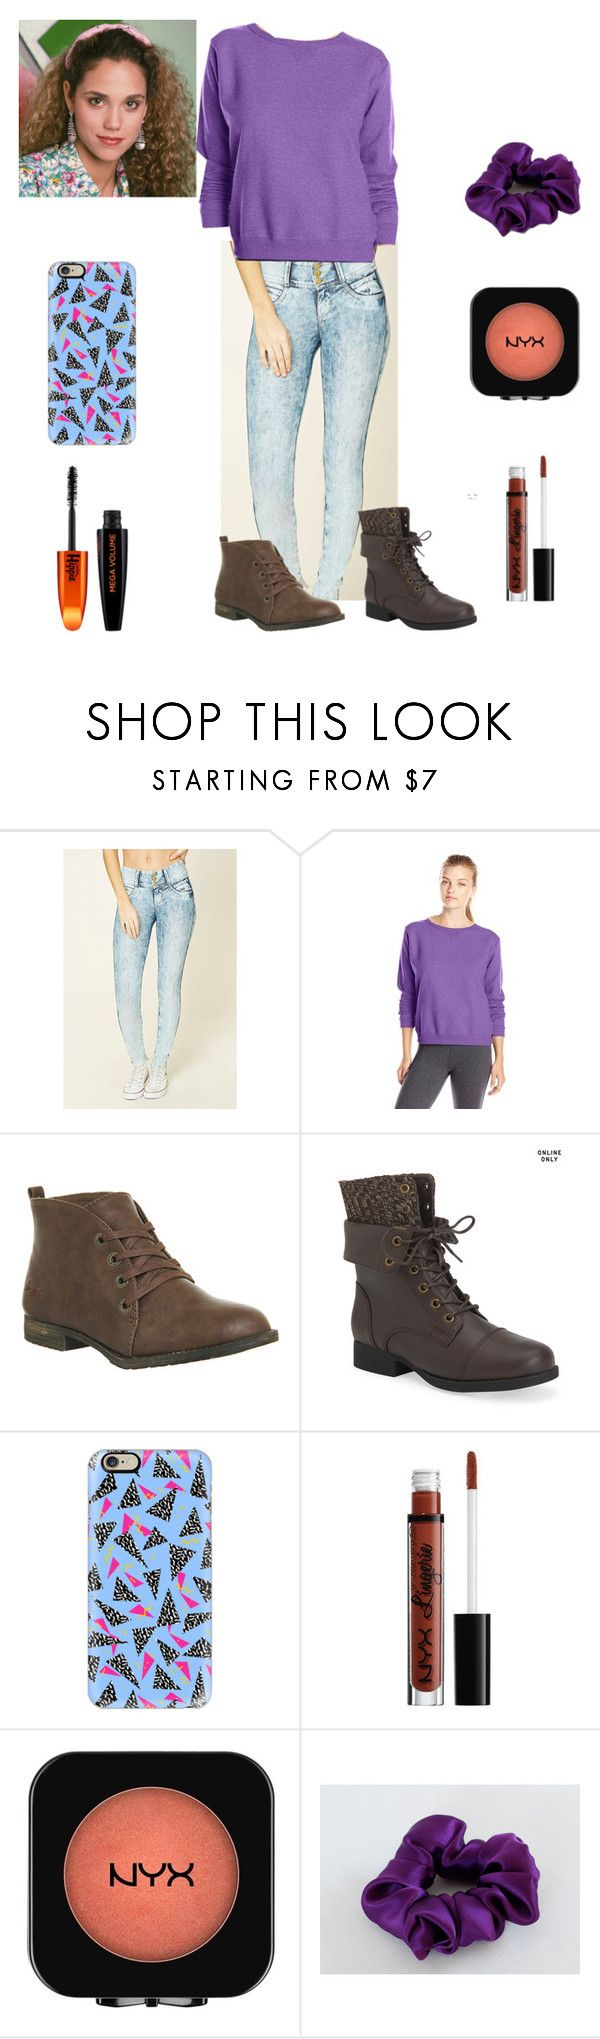 """""""Jessie Spano SBTB"""" by nlizzie6299 on Polyvore featuring Forever 21, Hanes, Blowfish, Aéropostale, Casetify and L'Oréal Paris"""